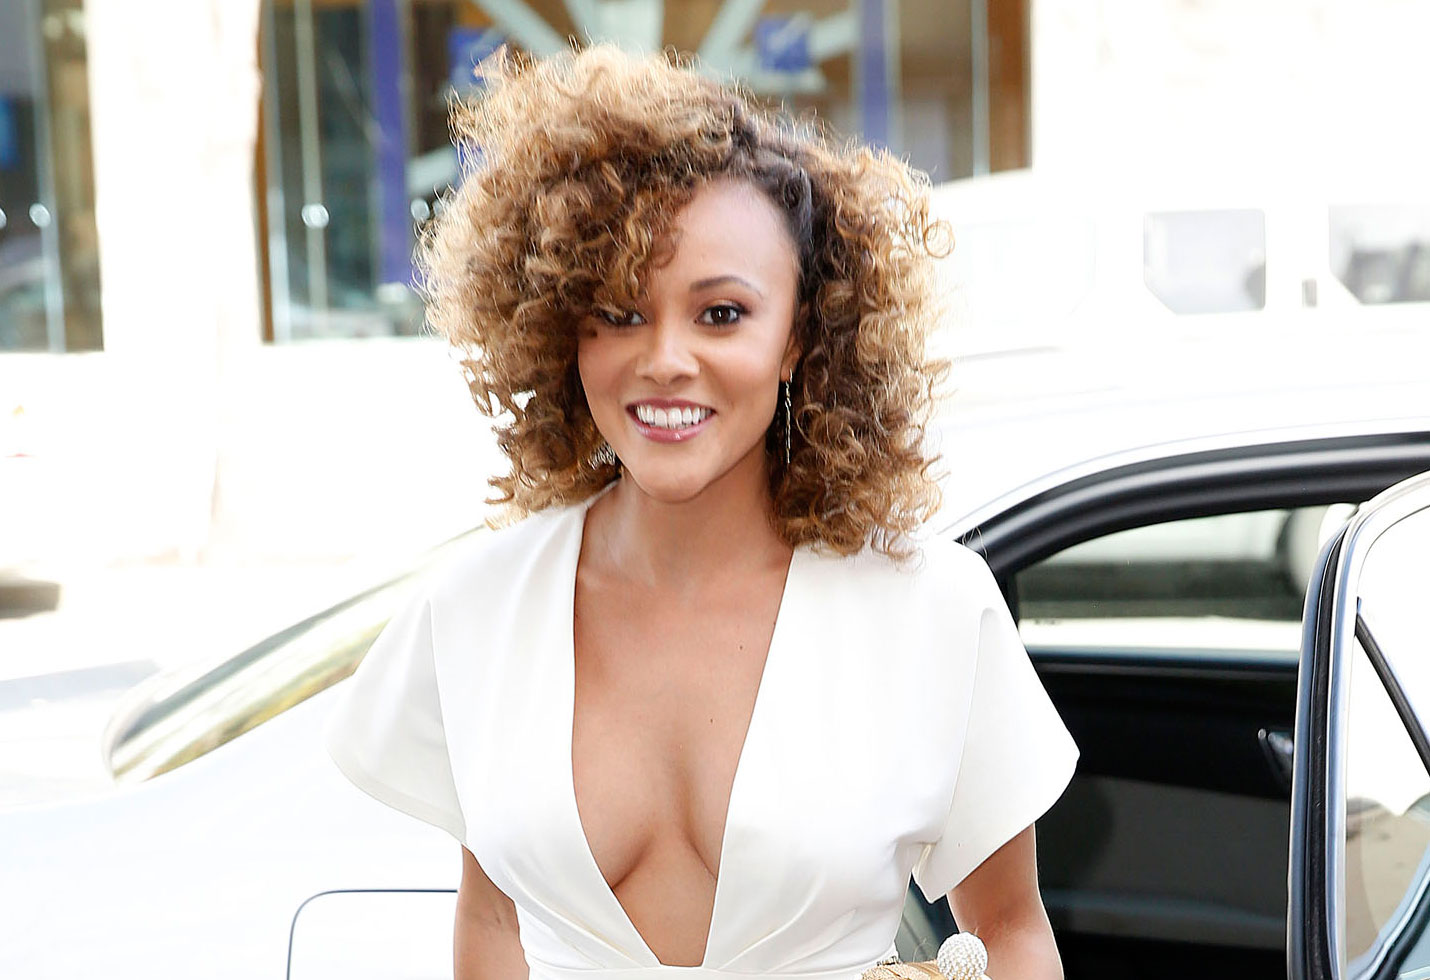 rhop-robyn-dixon-comments-on-ashley-darby-announcing-second-pregnancy-while-marriage-woes-play-out-on-tv